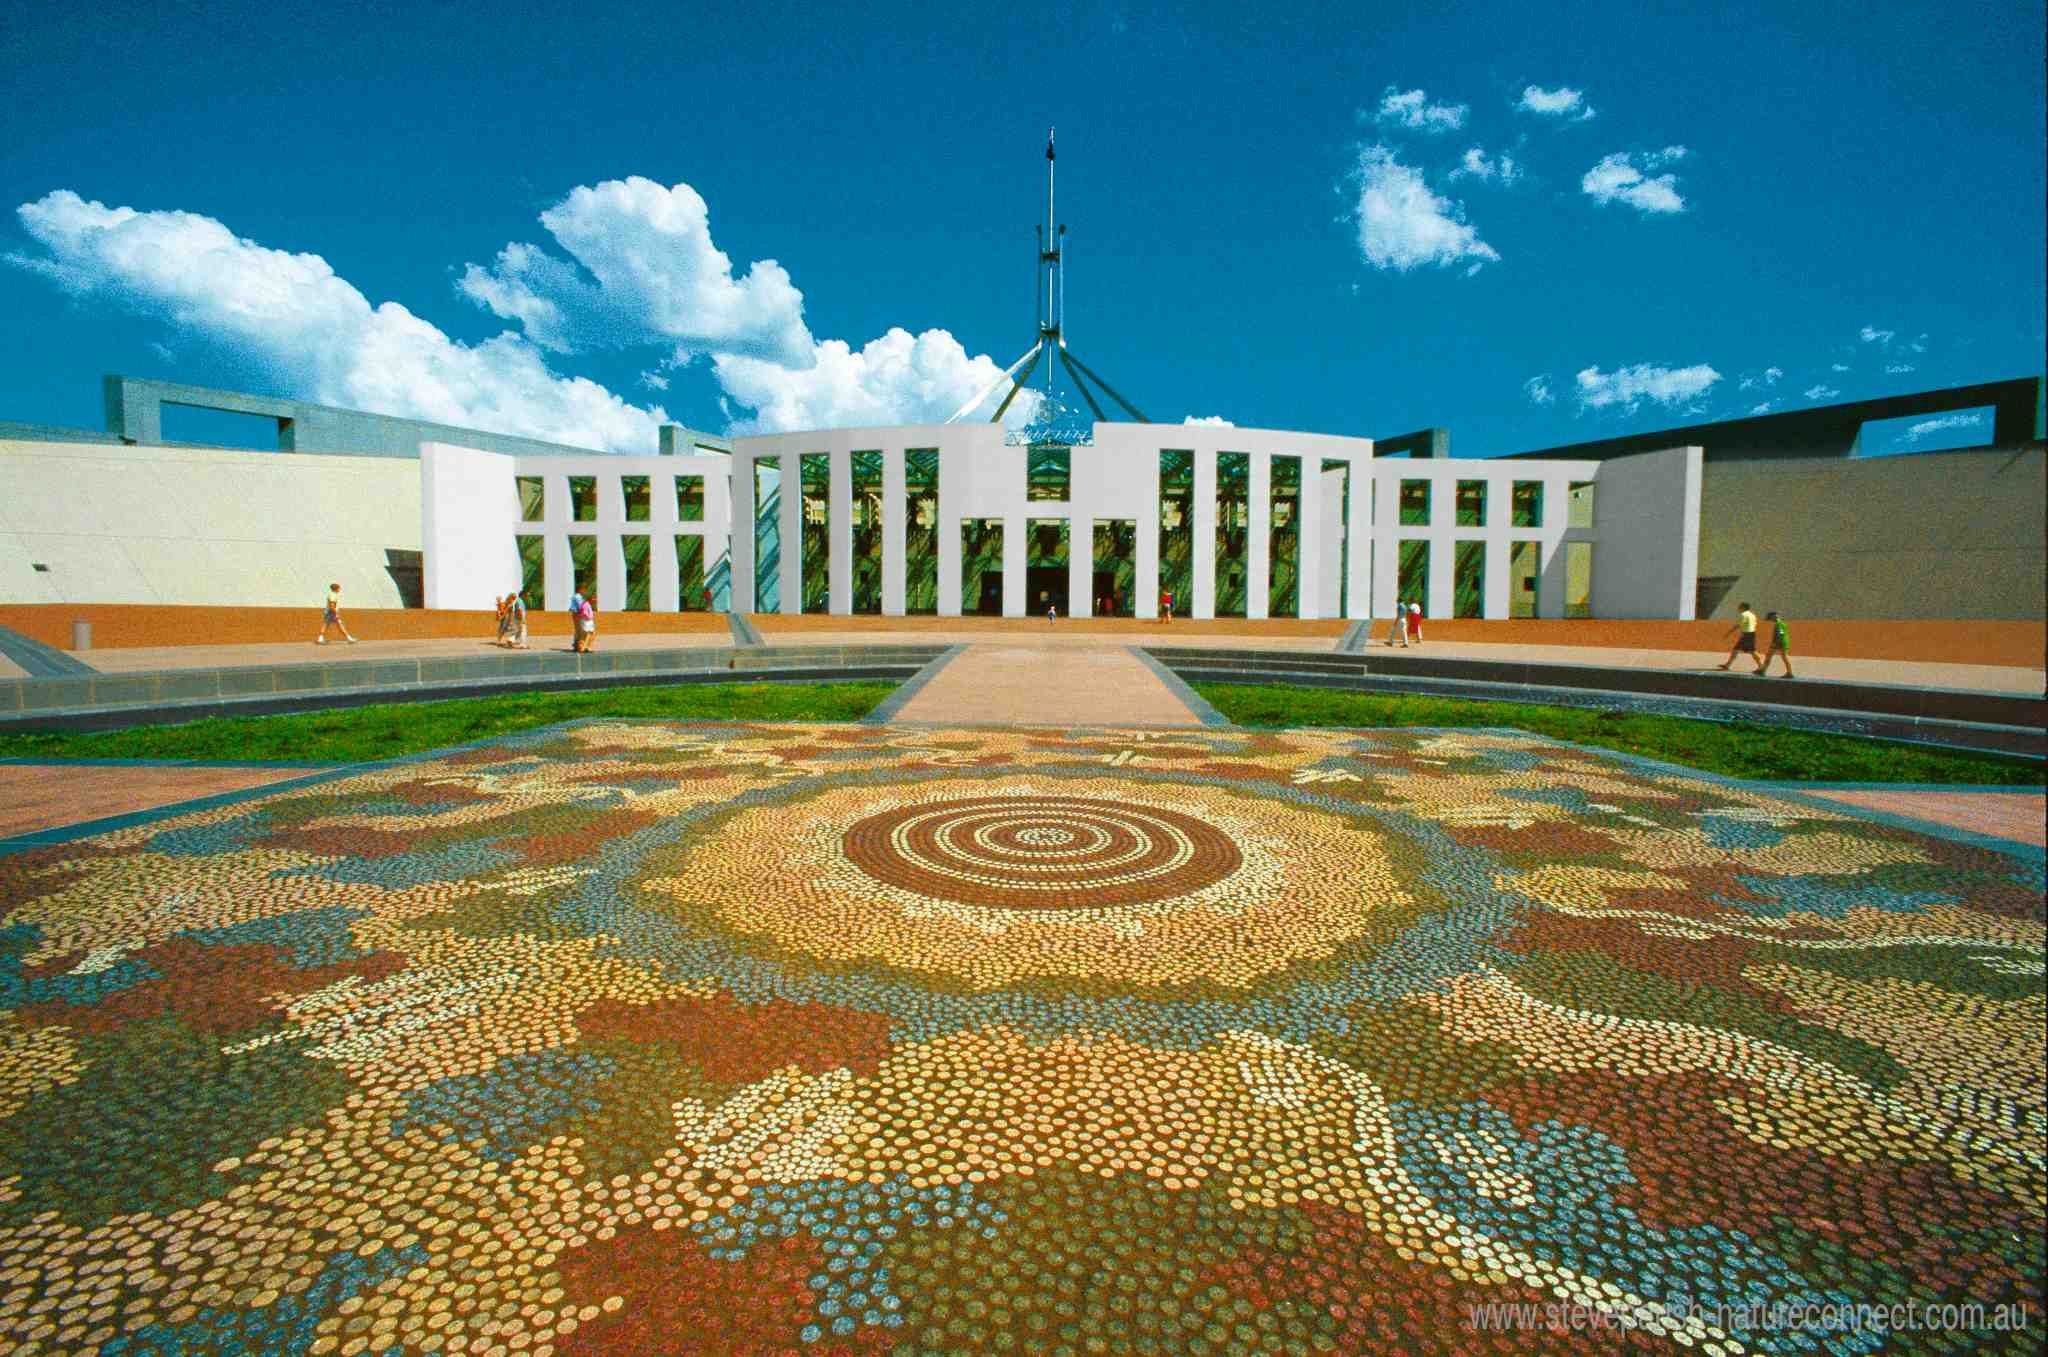 Aboriginal artwork outside of Parliament house in Canberra